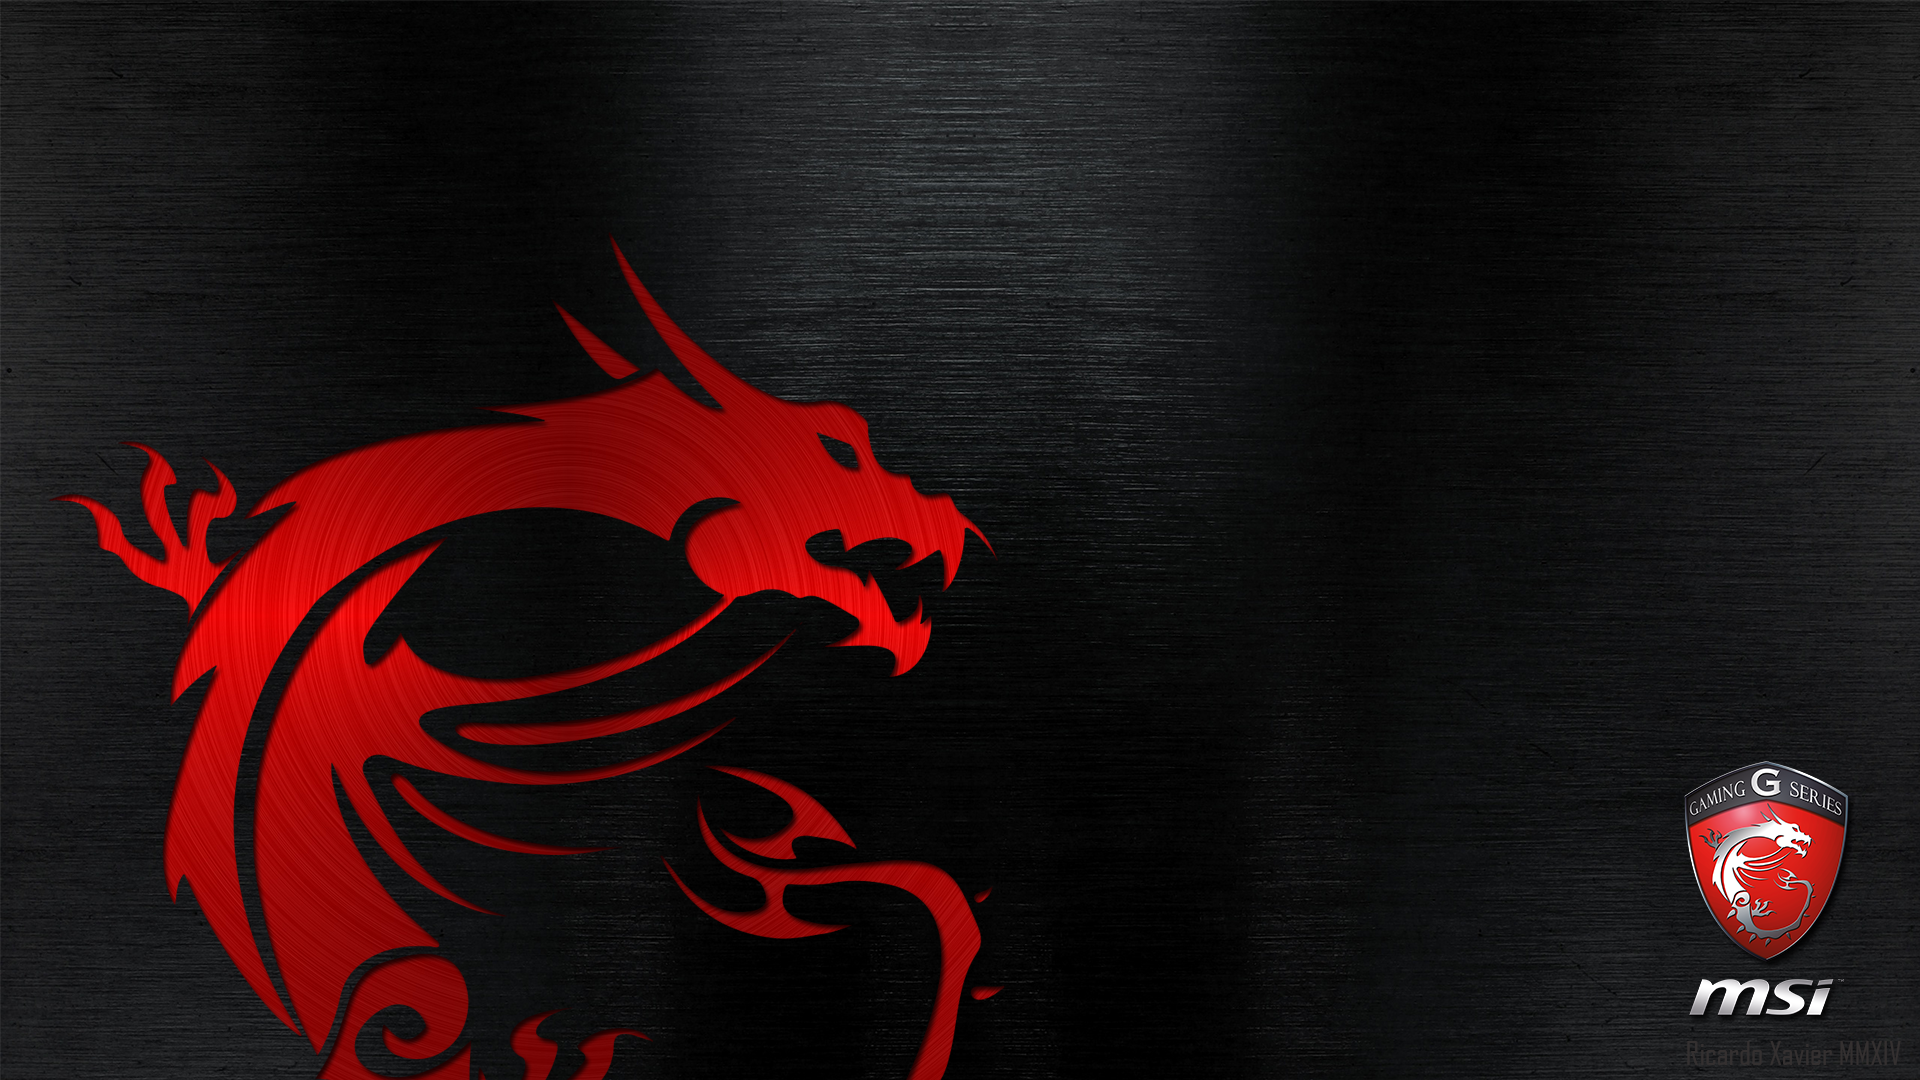 Msi gaming wallpaper red dragon emobossed 1920 1080 - Red gaming wallpaper ...